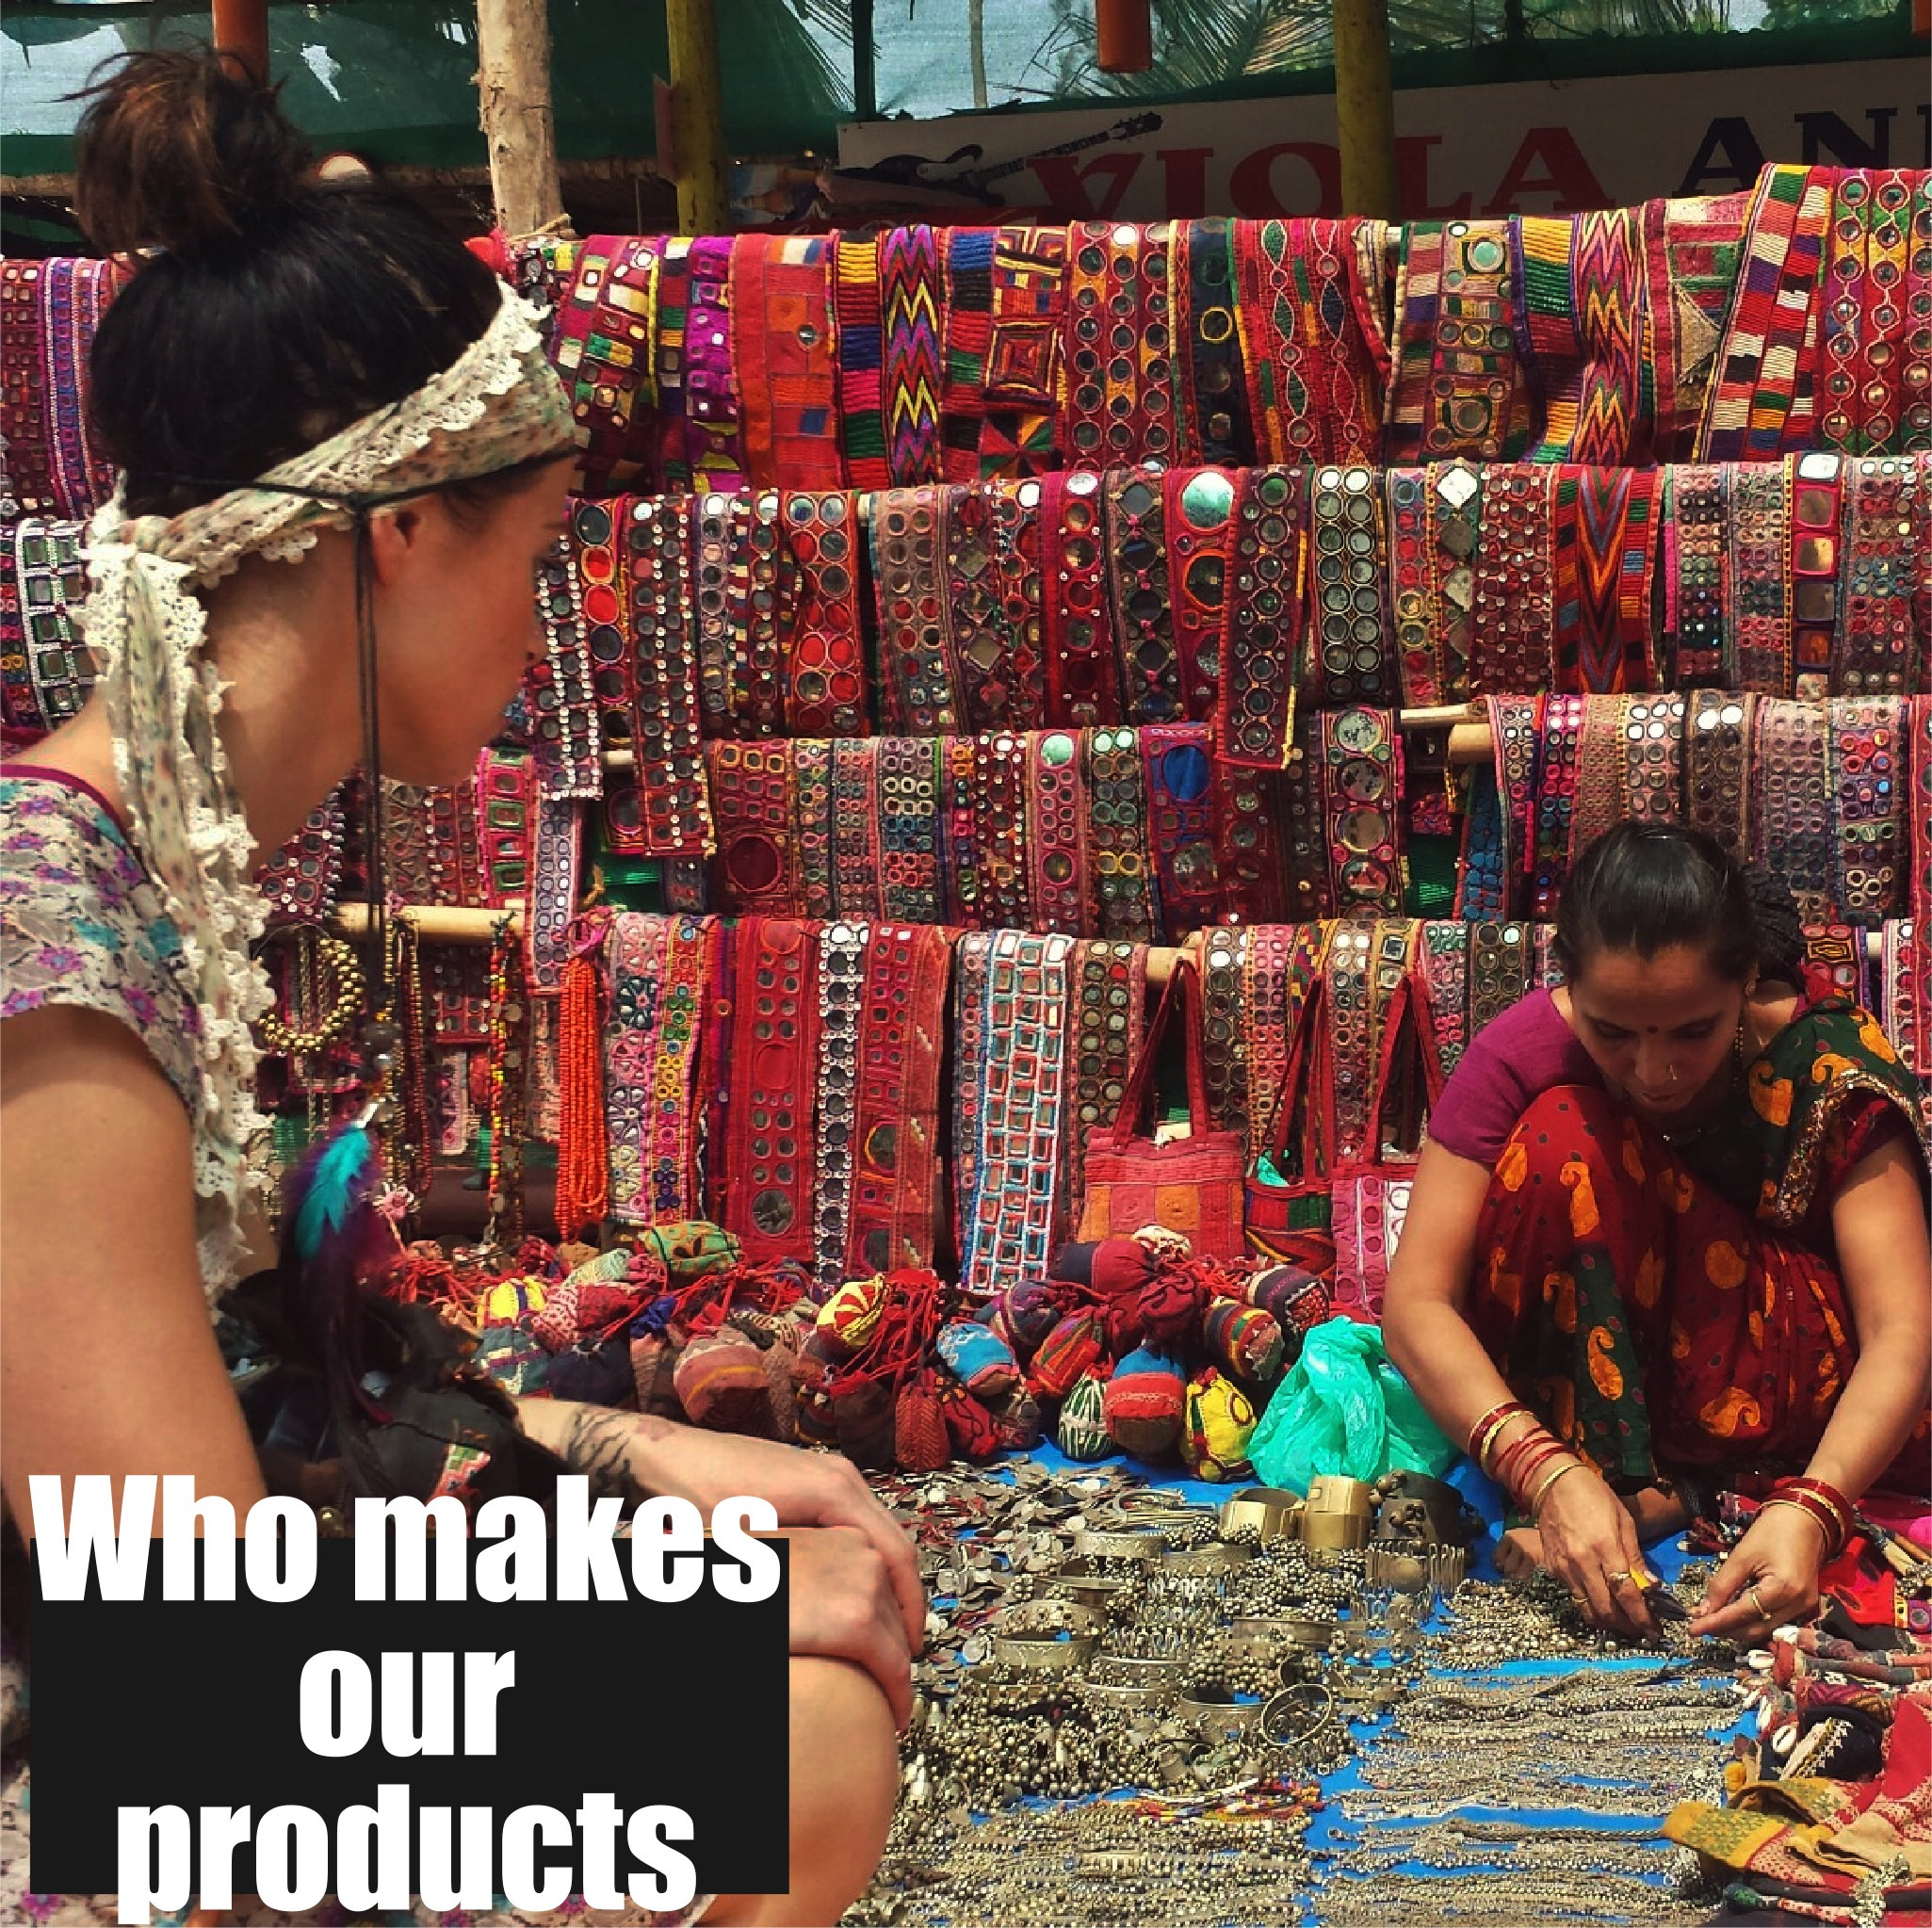 who make our products dames